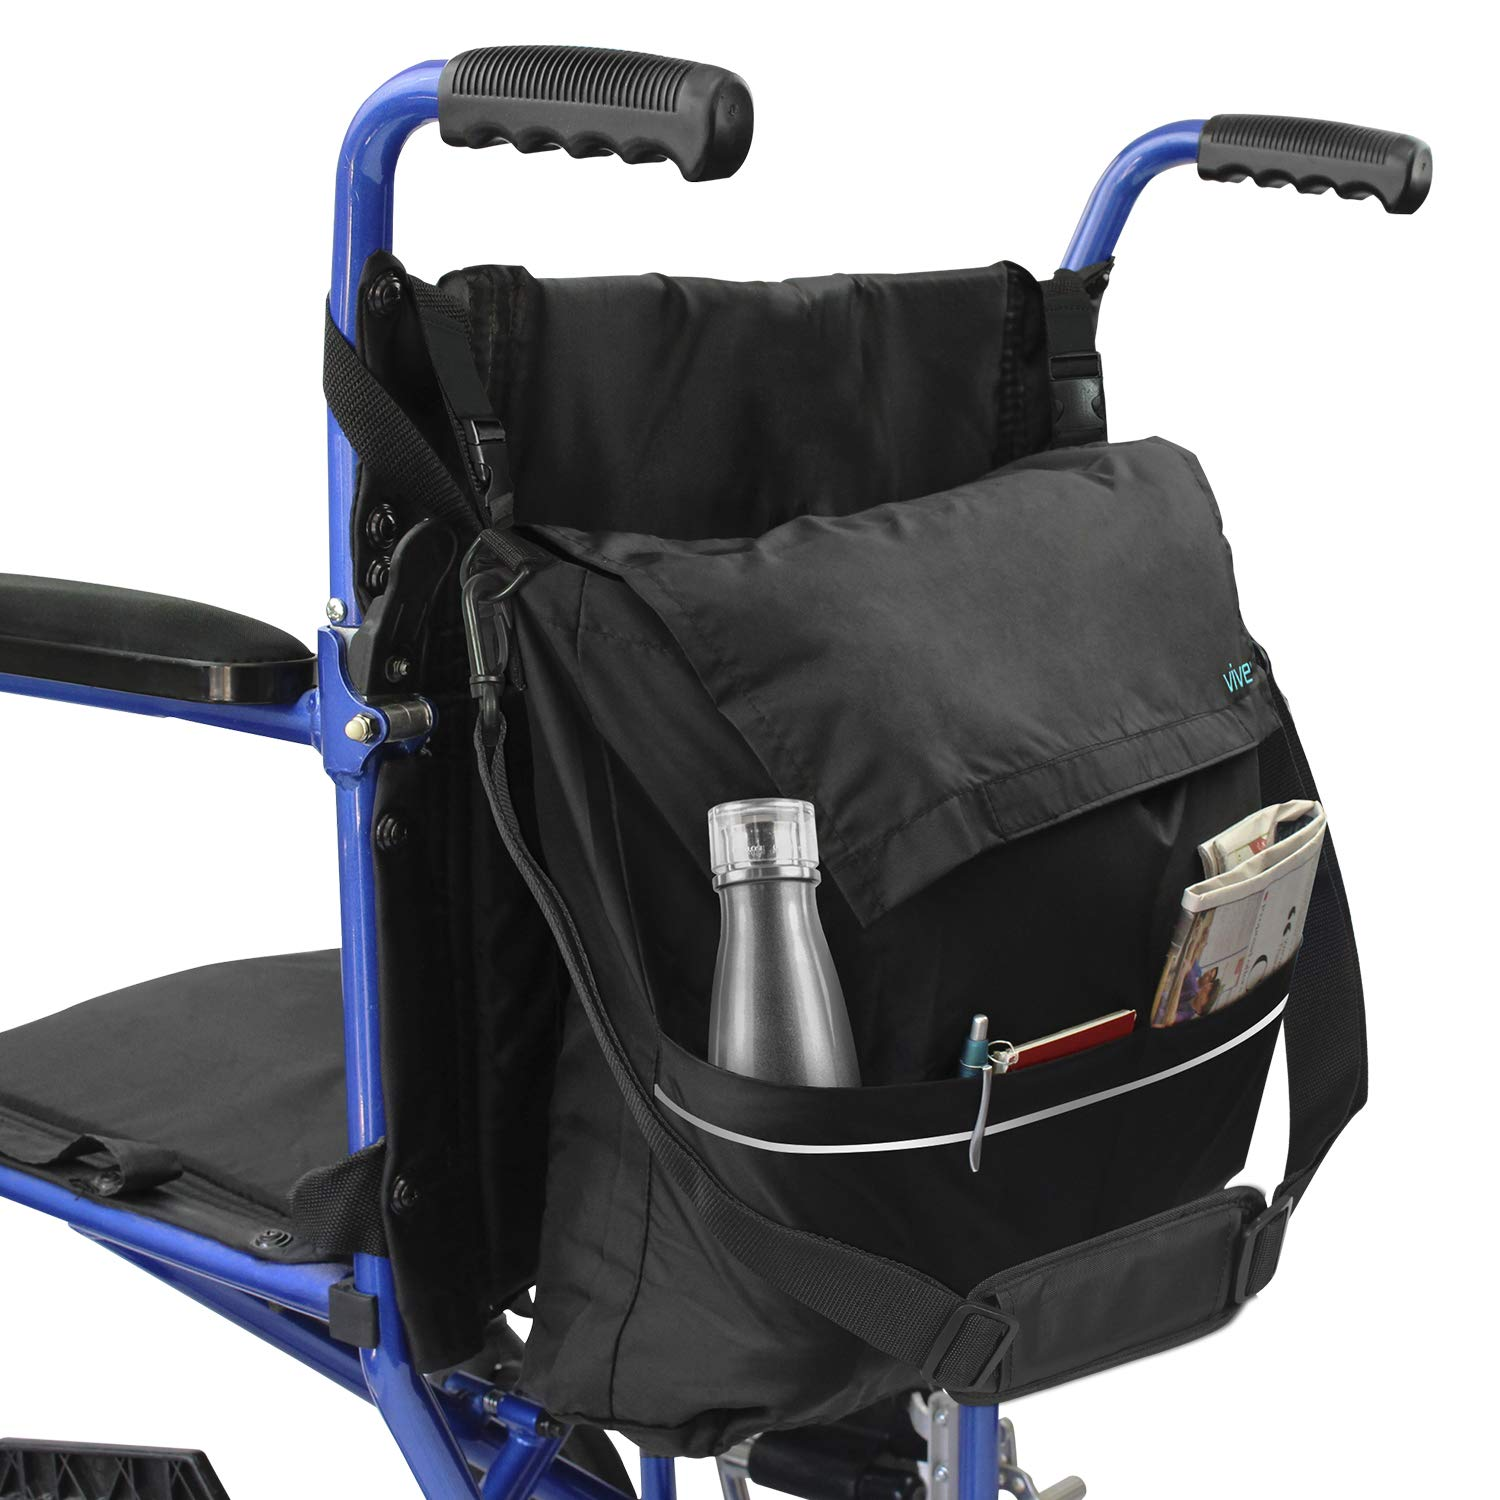 Vive Wheelchair Bag - Wheel Chair Storage Tote Accessory for Carrying Loose Items and Accessories - Travel Messenger Backpack for Men, Women, Handicap, Elderly - Accessible Pouch and Pockets, Black by Vive